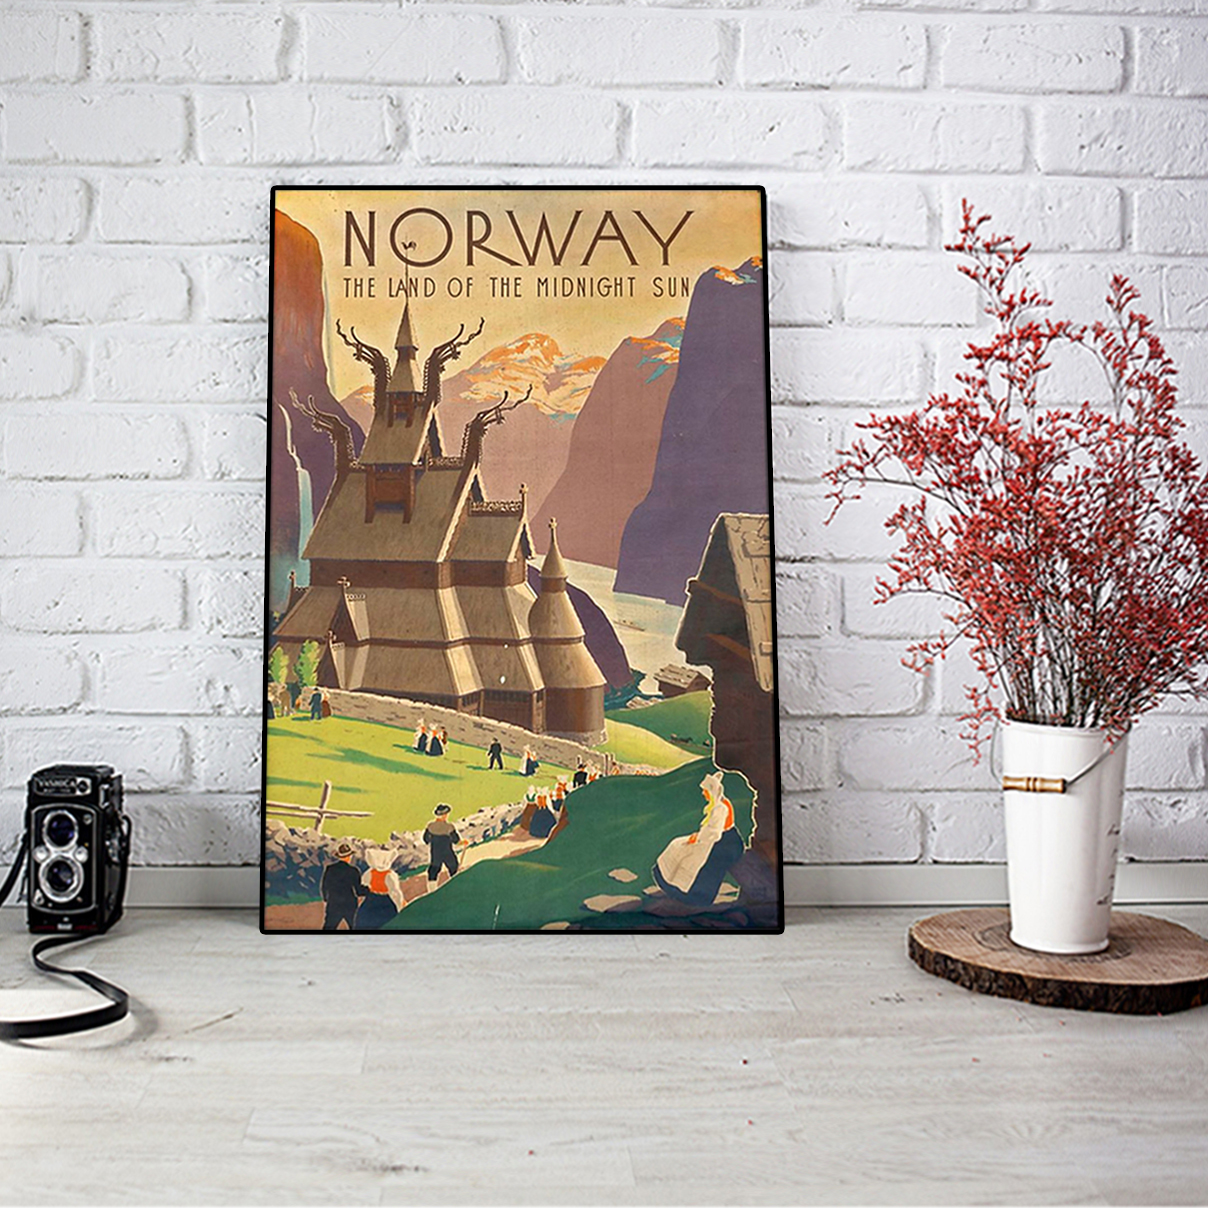 Norway the land of the midnight sun poster A3